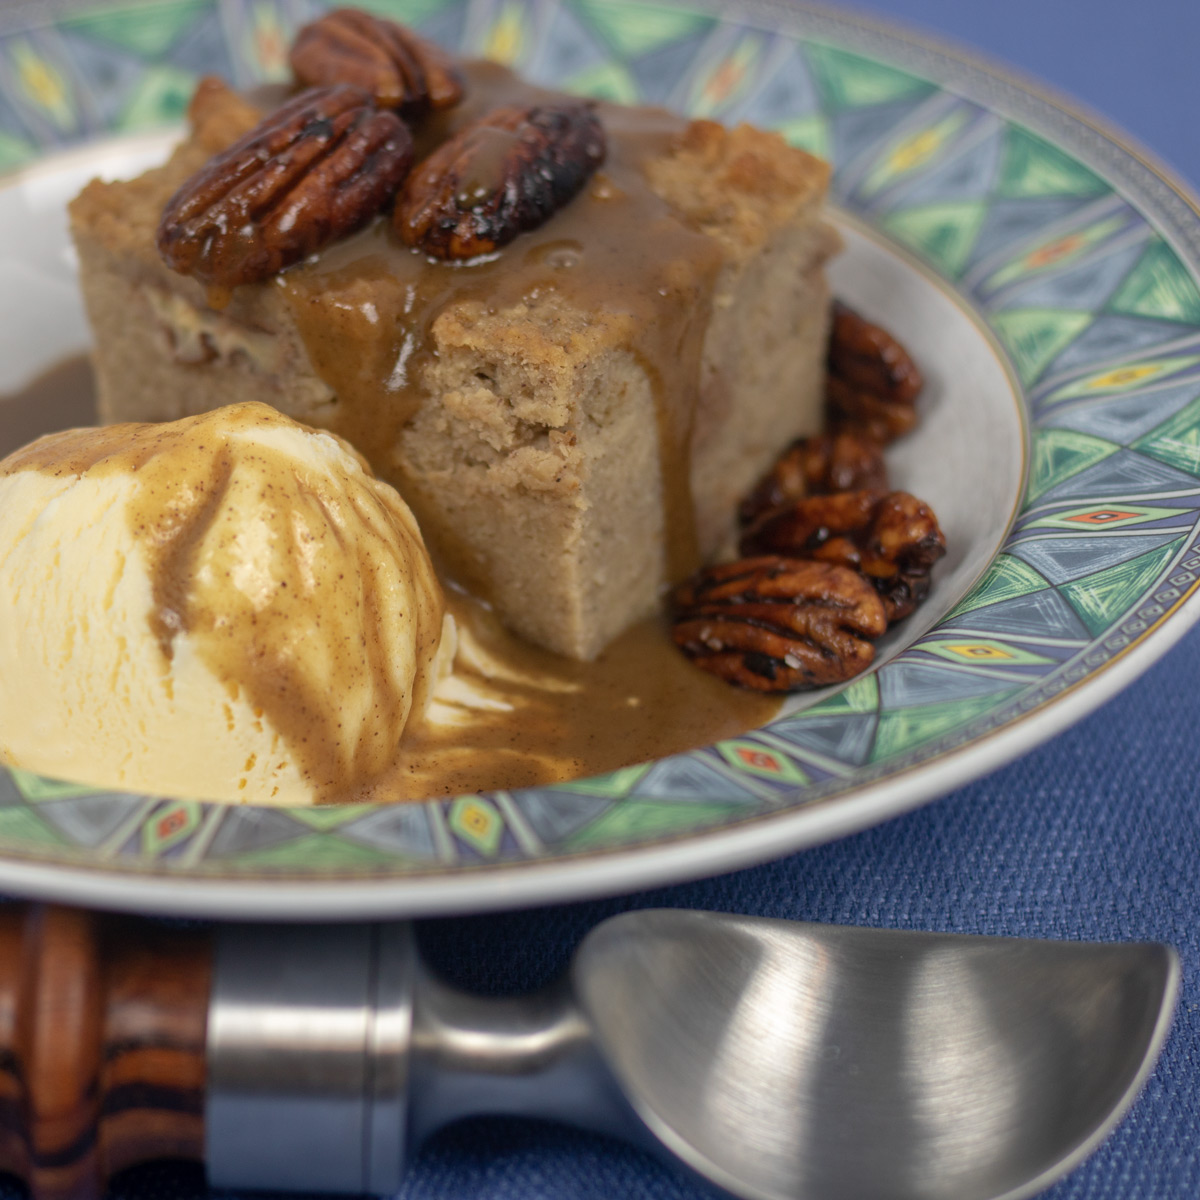 bread pudding with cane syrup rum sauce and glazed pecans with a scoop of vanilla ice cream in a bowl with green trim and an ice cream scooper